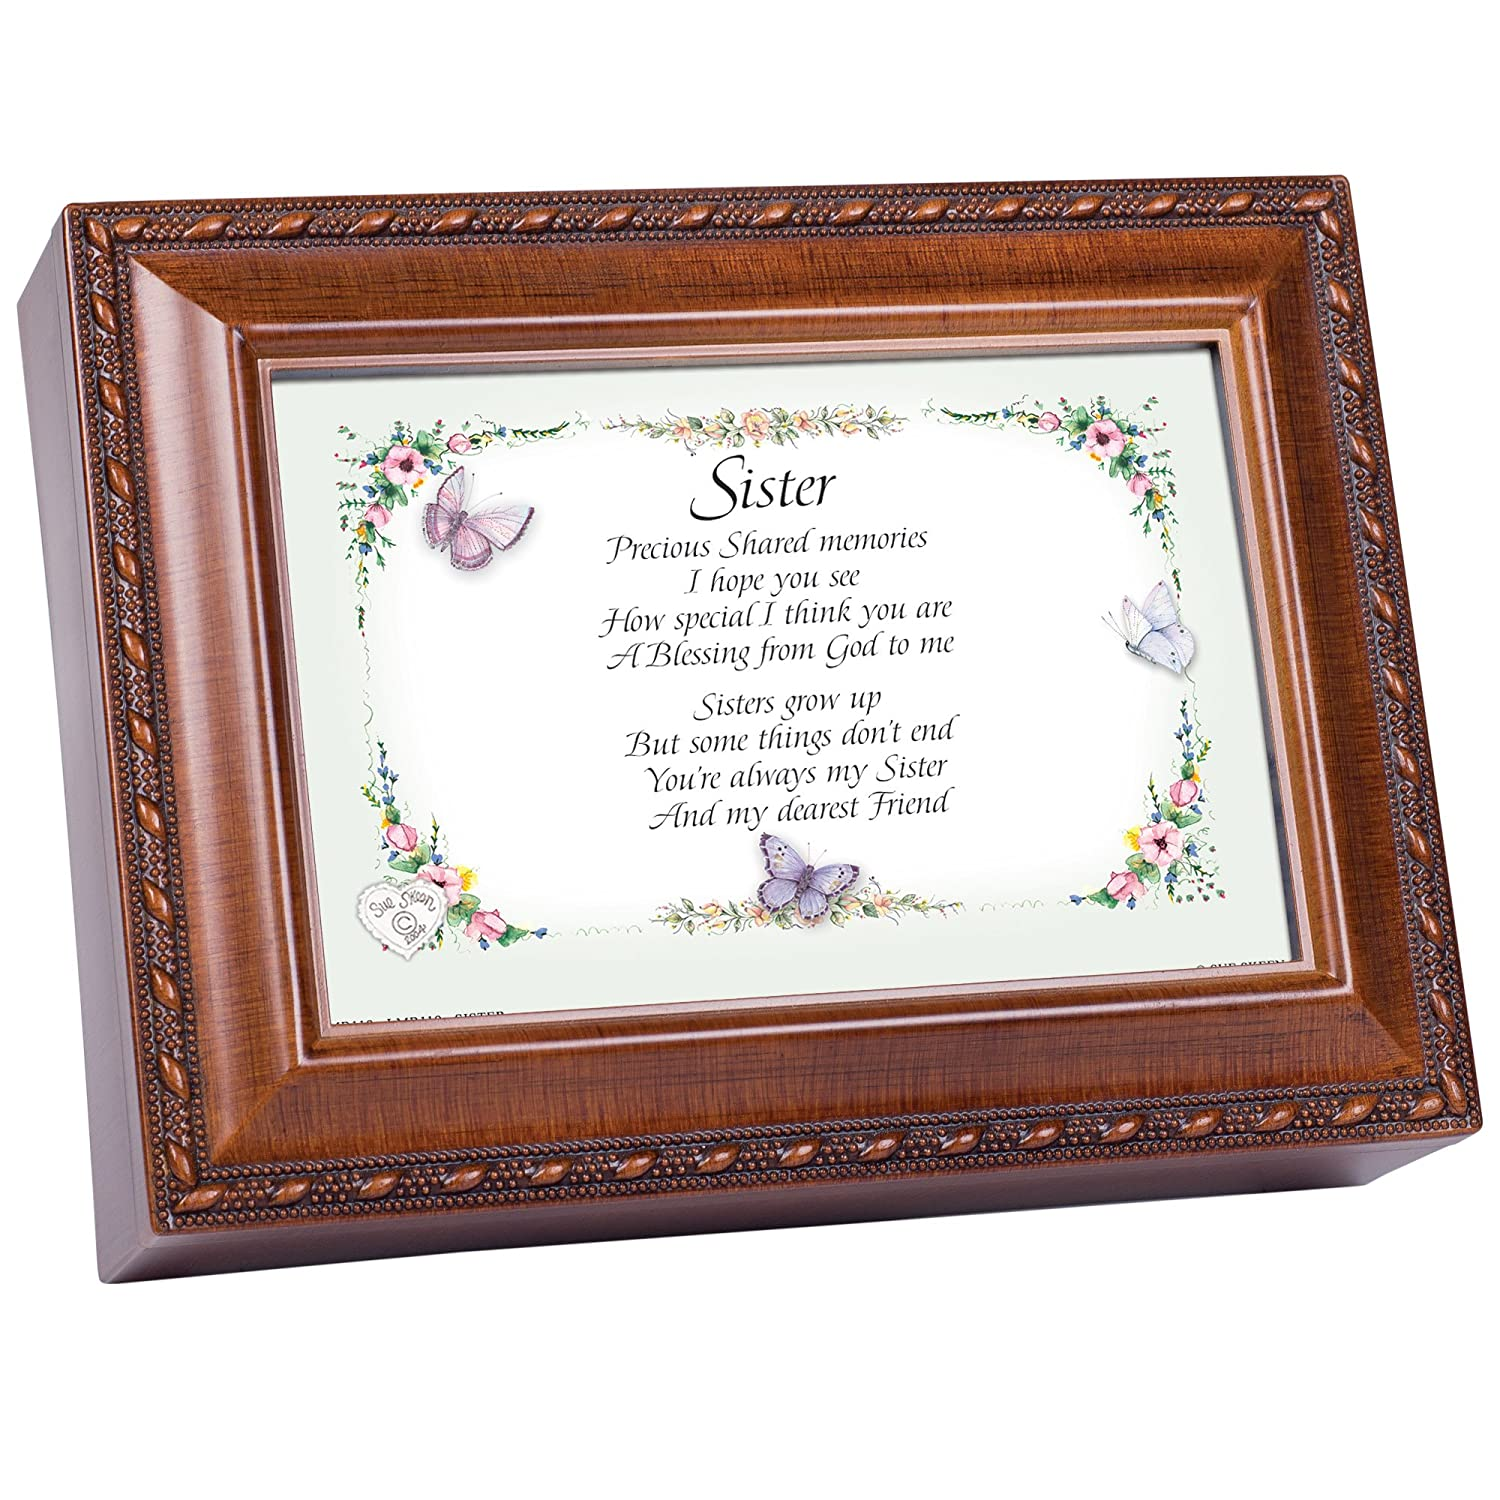 Cottage Garden Sister Woodgrain Music Box Plays Friends Are For MB119